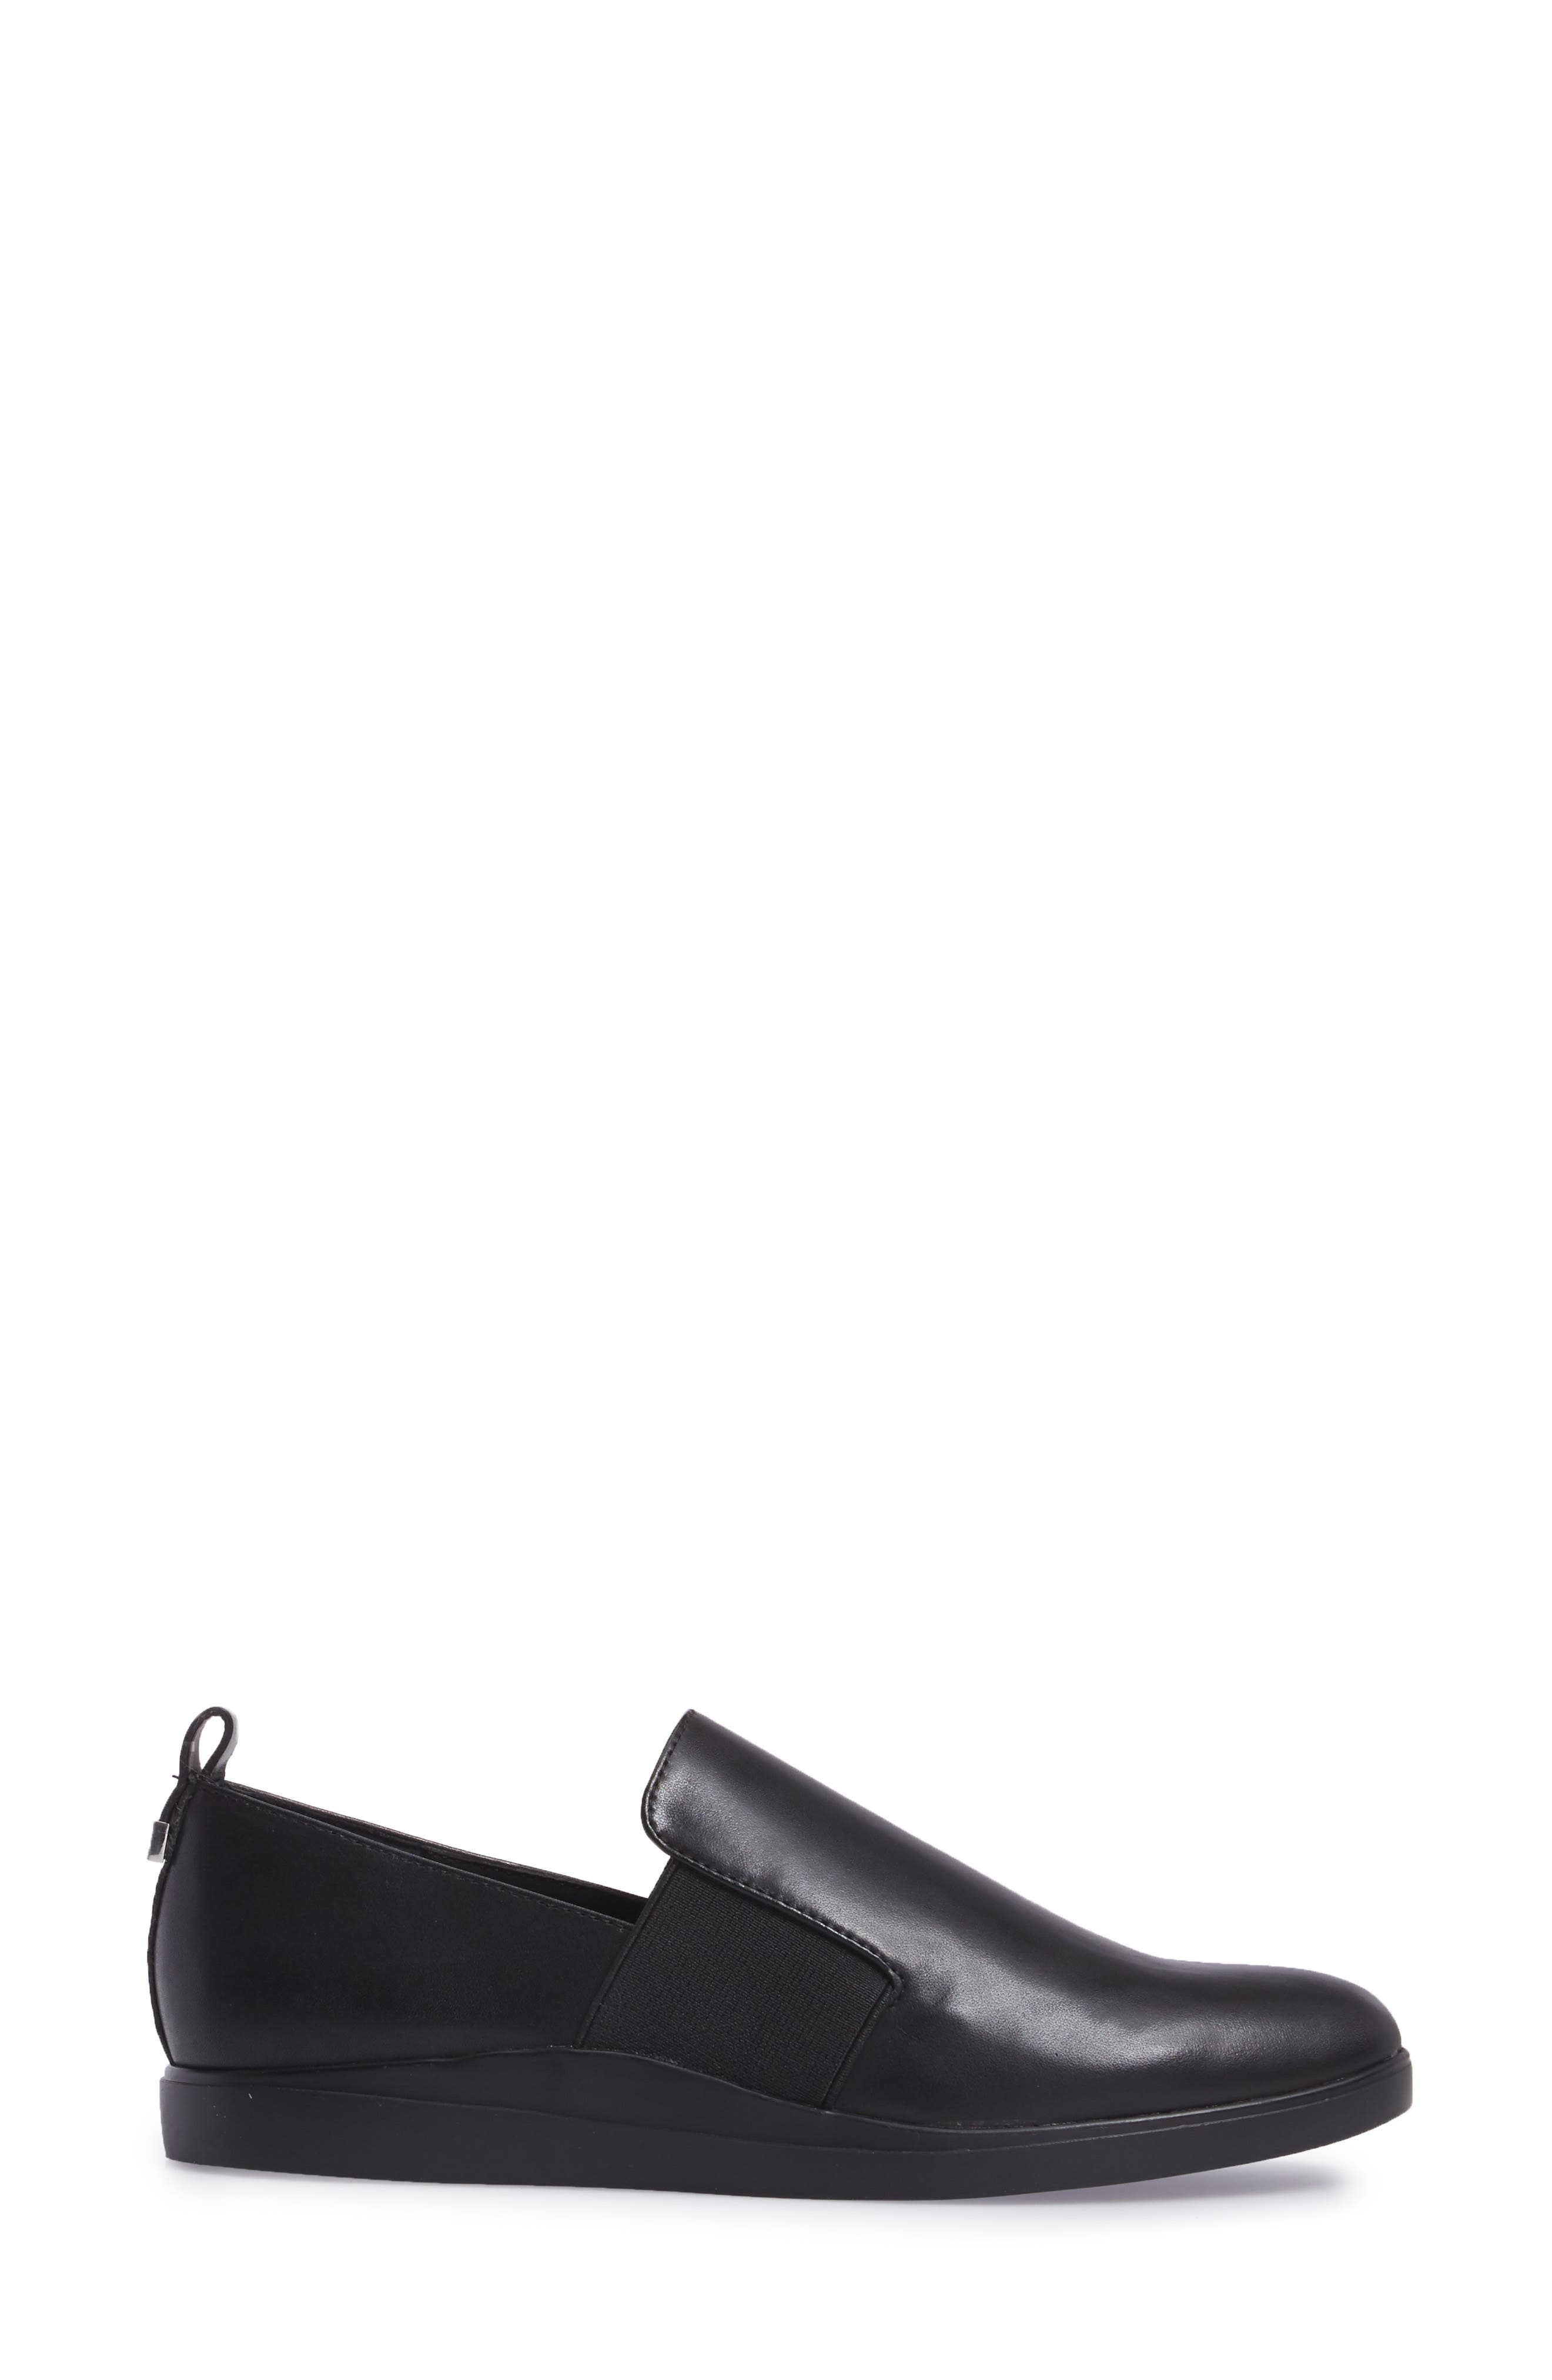 Shannin Loafer,                             Alternate thumbnail 3, color,                             Black Leather